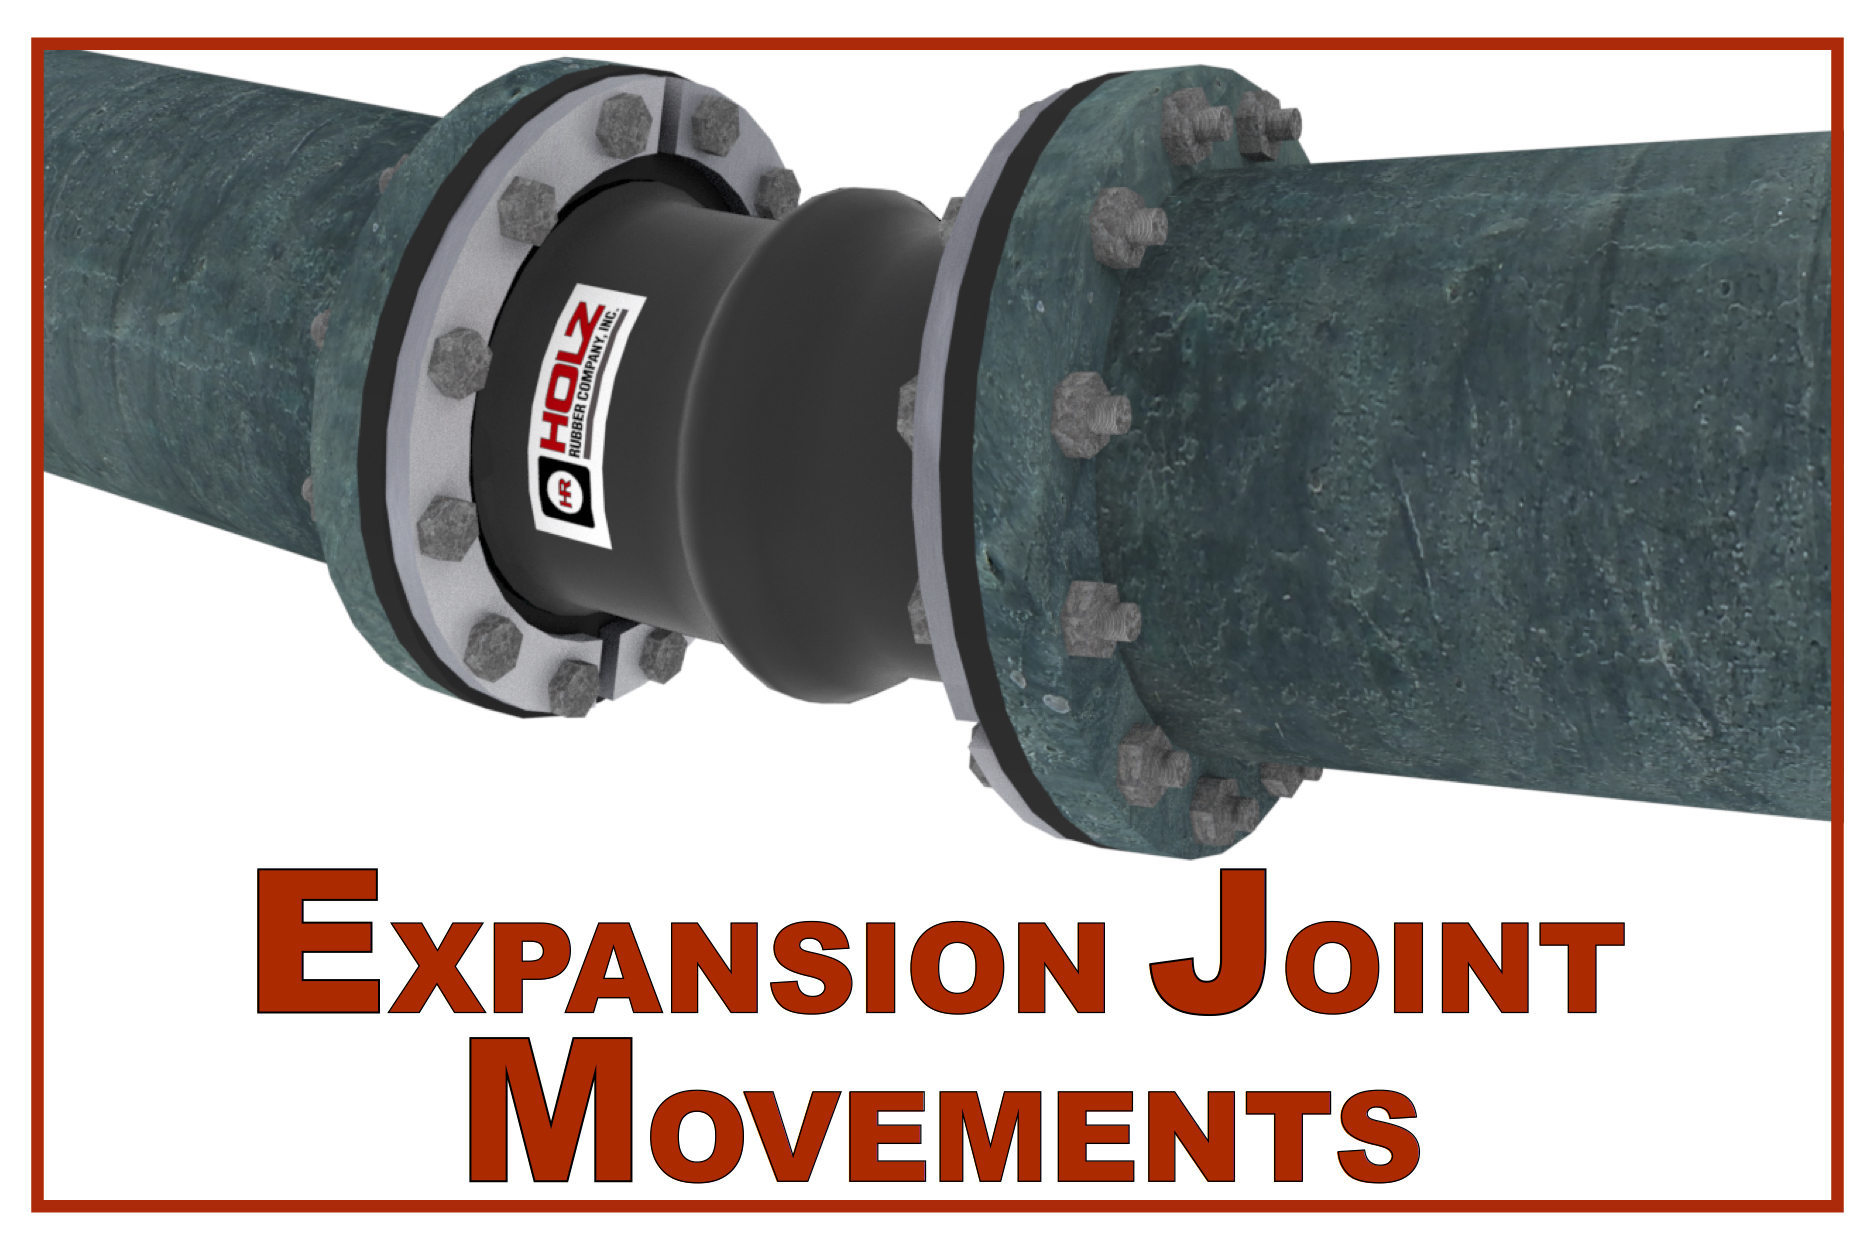 Holz Rubber Education Expansion Joint Movements